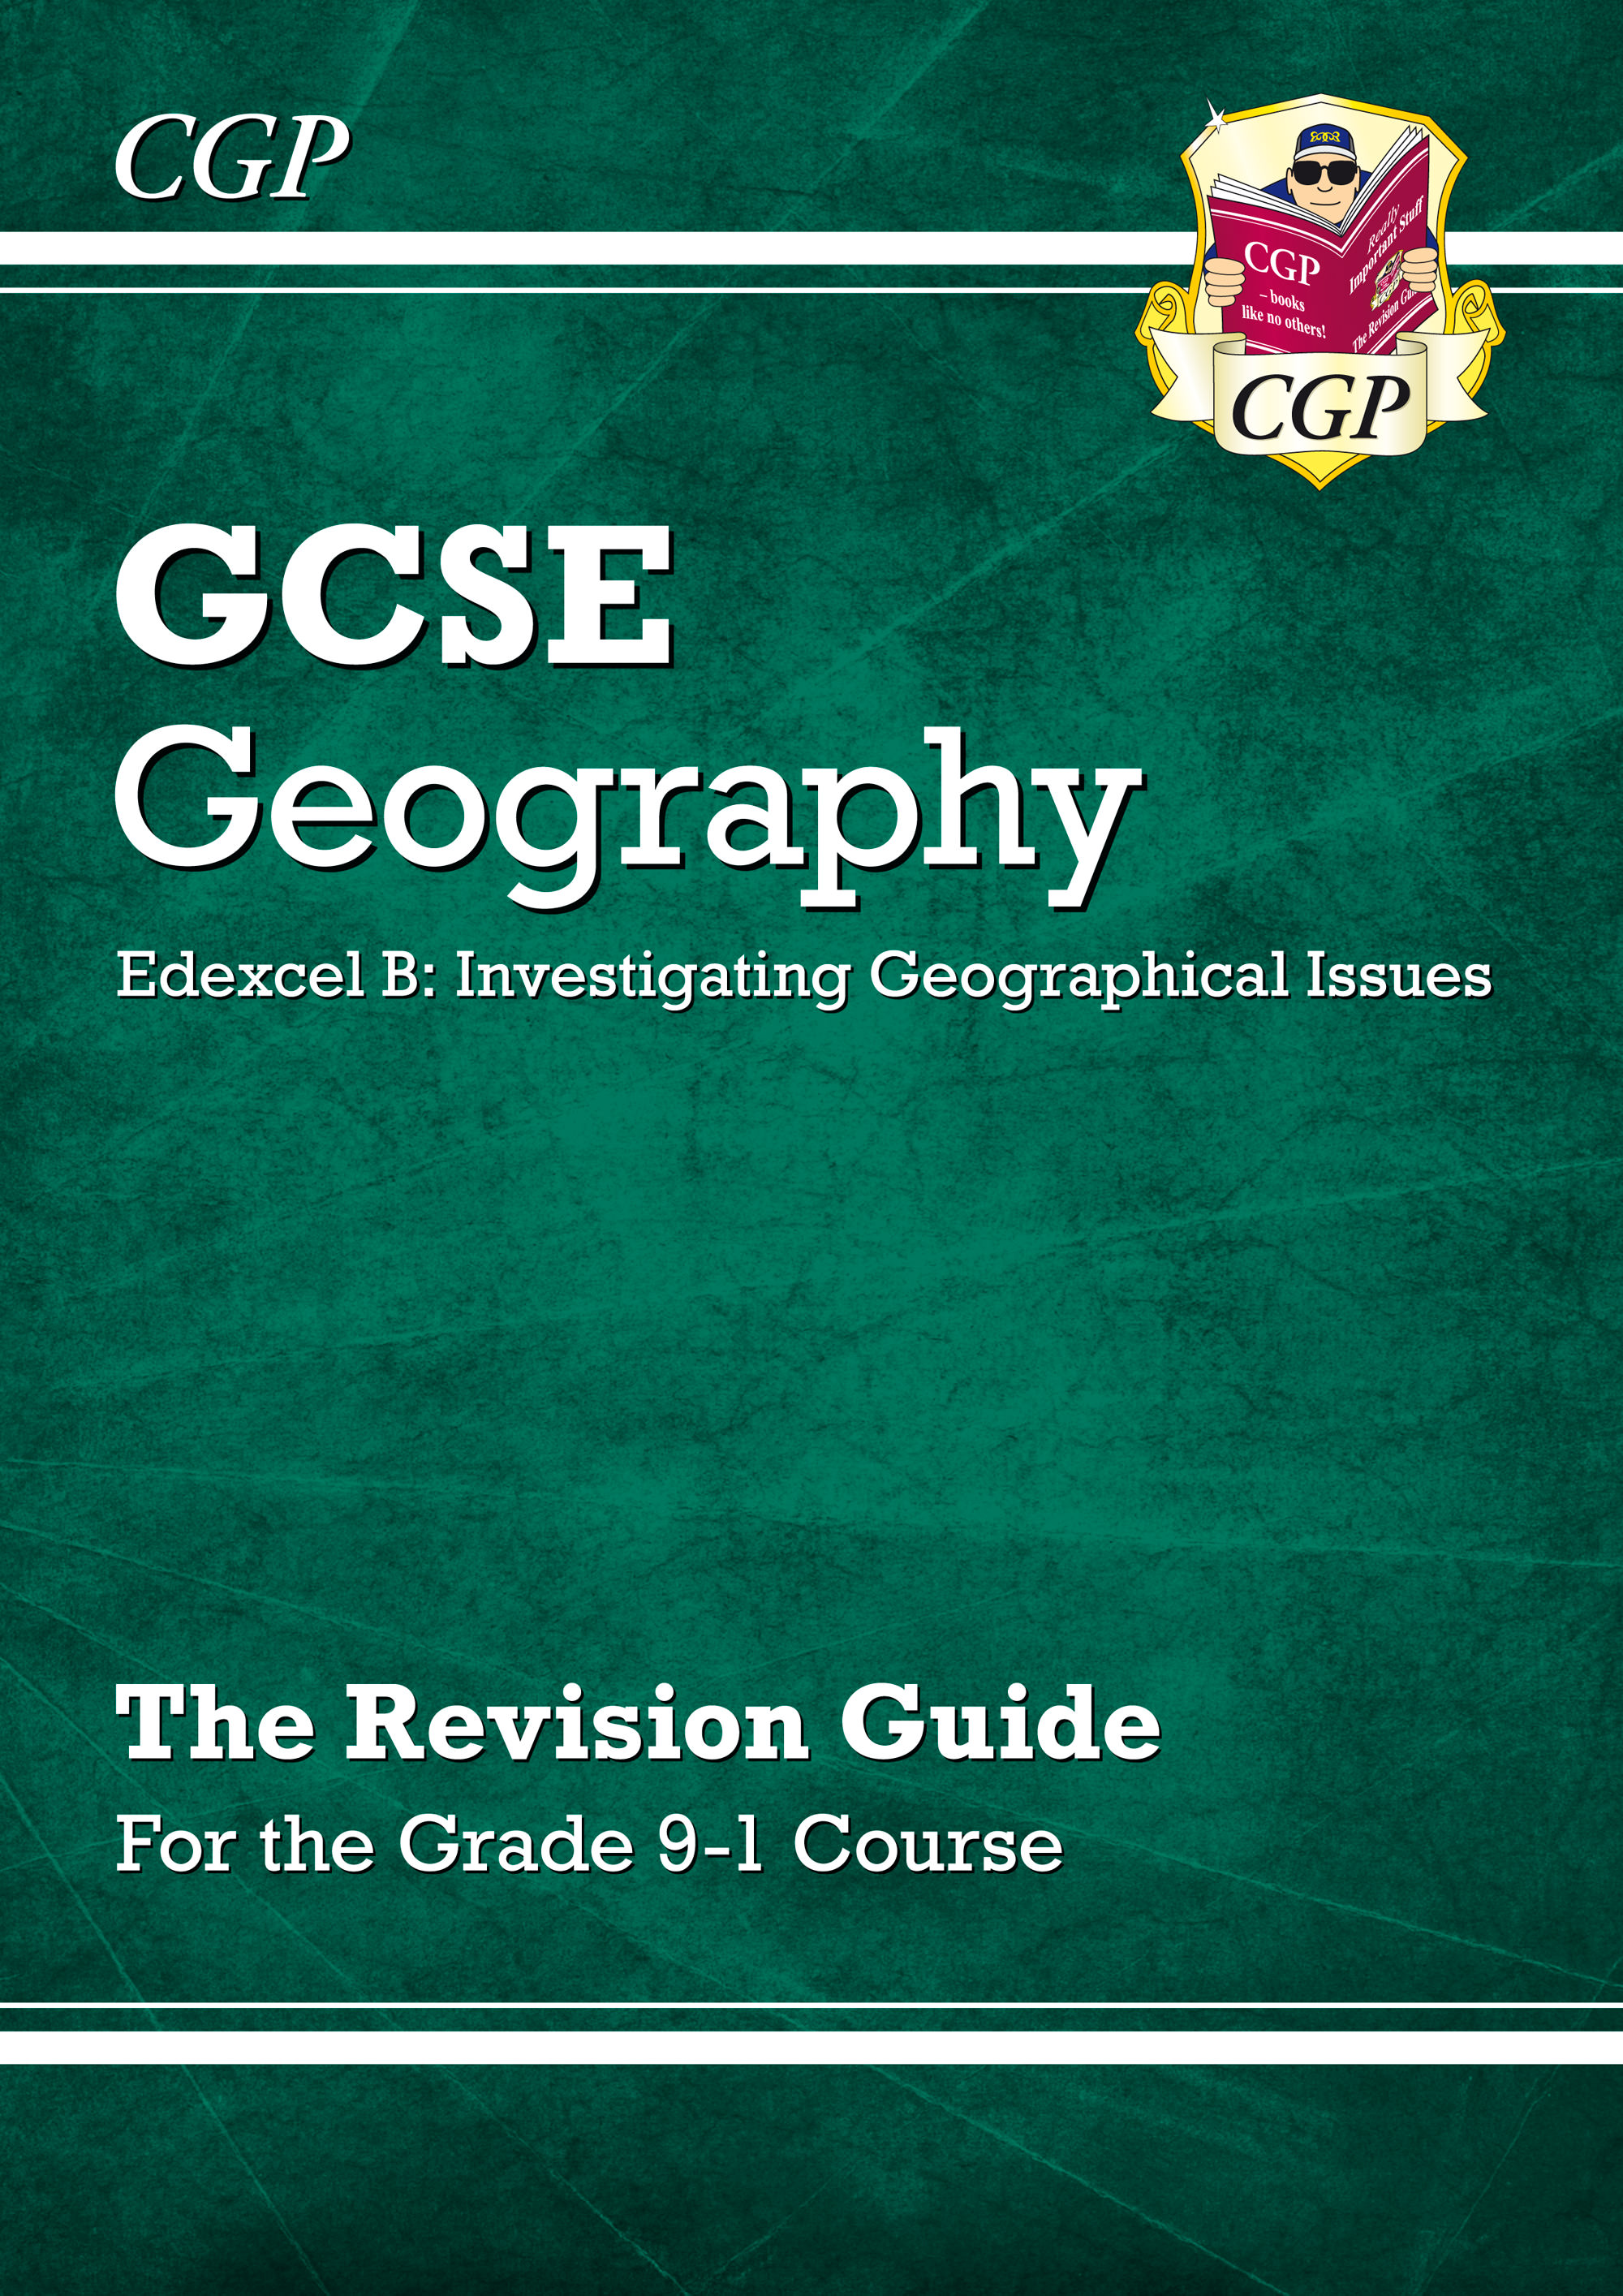 GER41 - Grade 9-1 GCSE Geography Edexcel B: Investigating Geographical Issues - Revision Guide